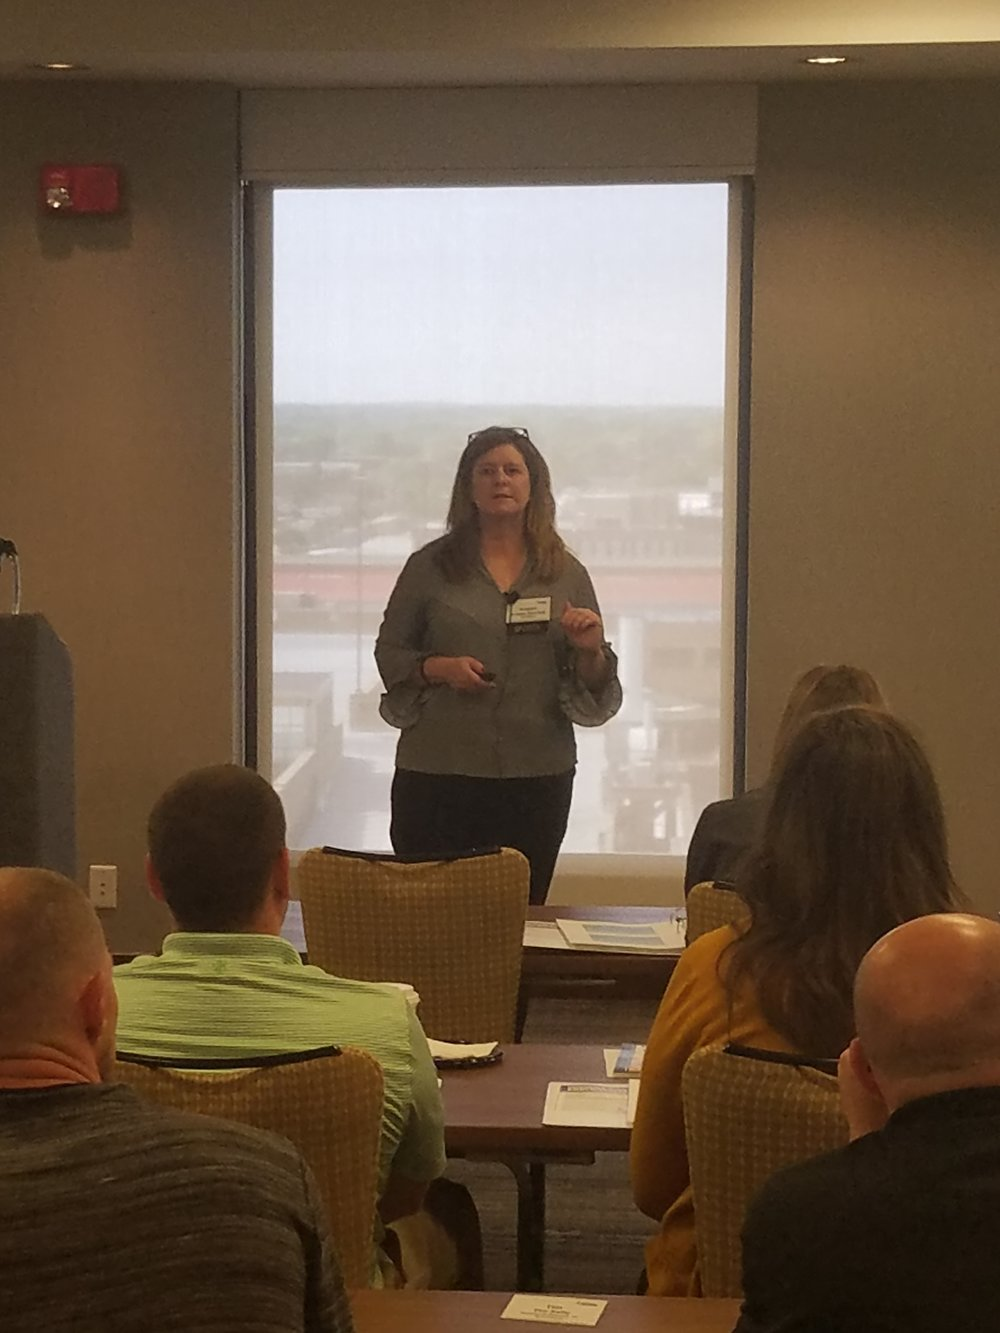 """Kristen Belcredi,P.E., C.H.M.M., ISO Auditor, Senior Vice President, Engineering Services, presenting """"Water Permitting 101"""""""